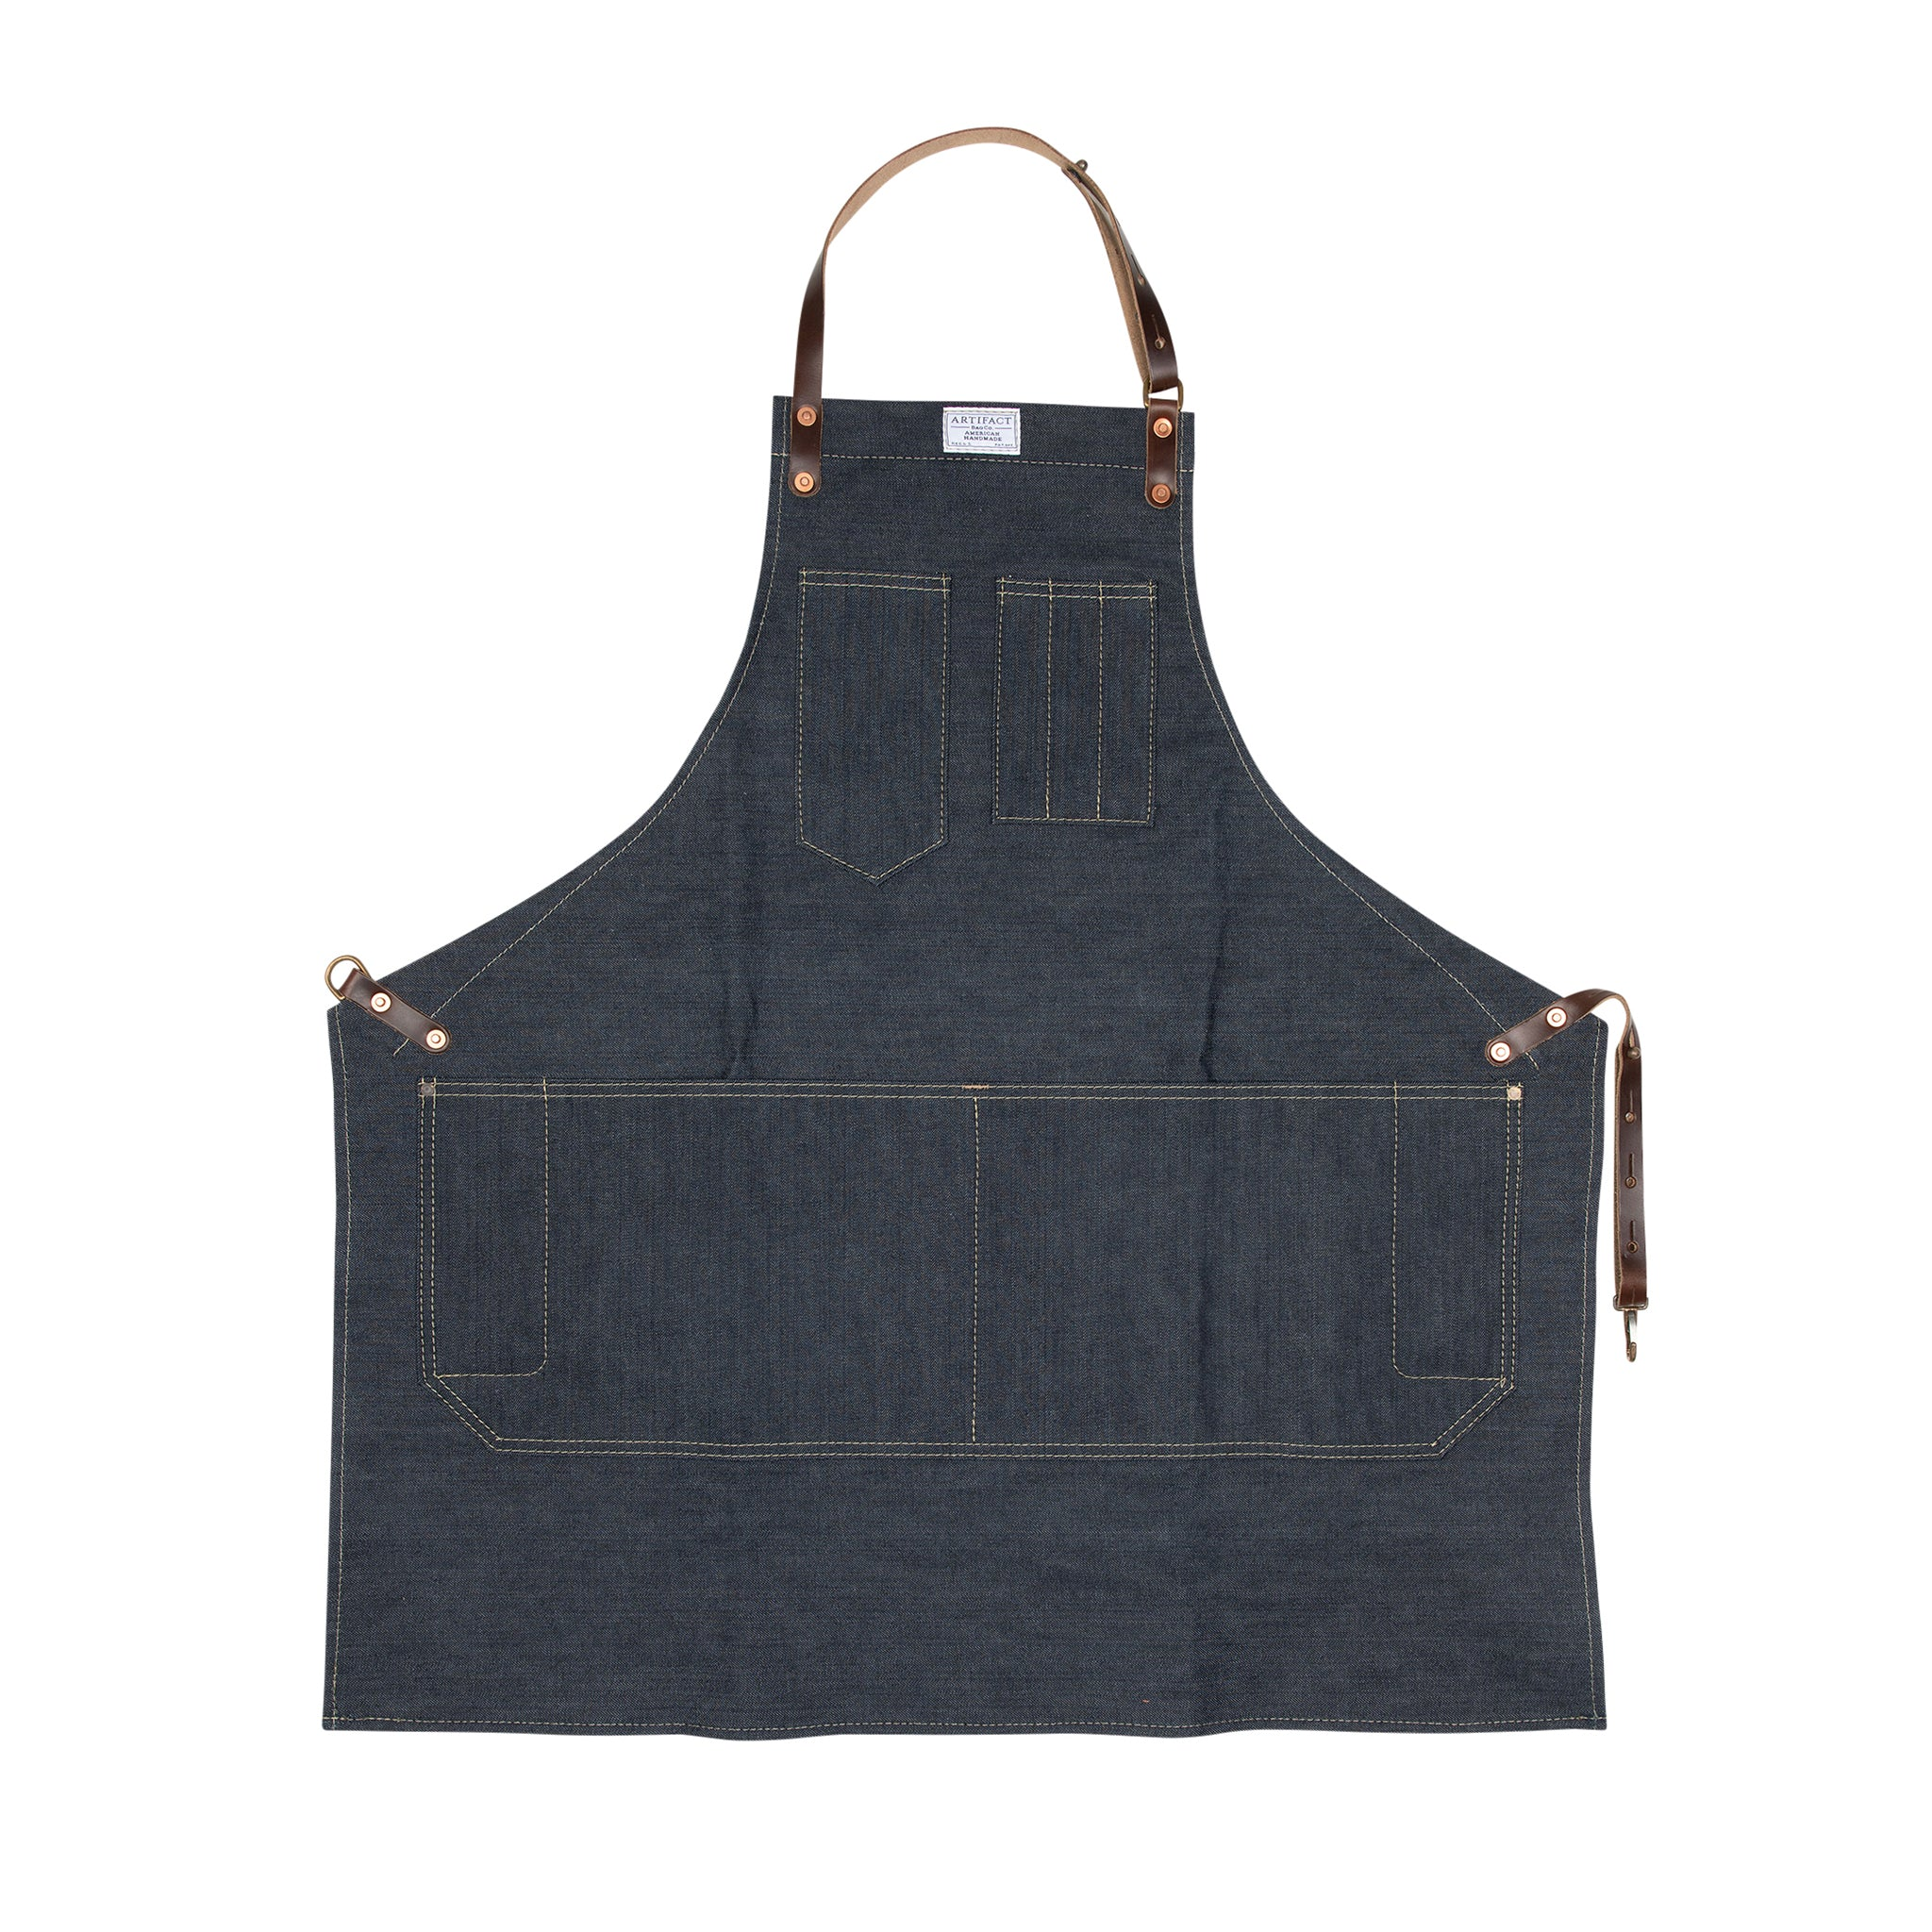 Artifact Kurabo Denim Kurabo Denim Apron w/ Fixed Leather Strap